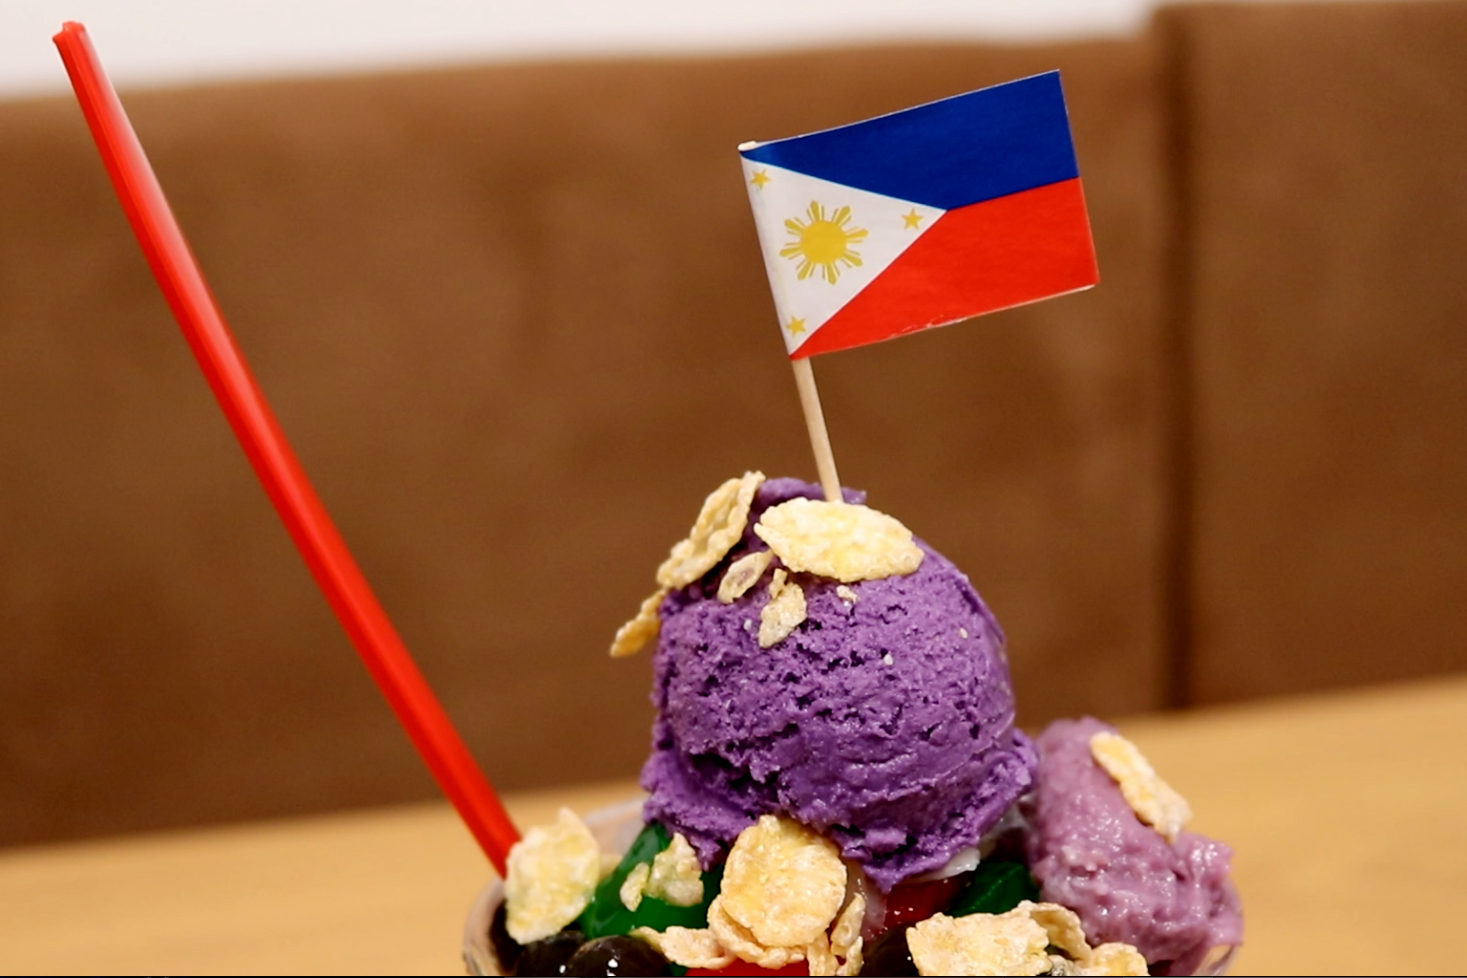 Halo Halo Filipino Food, stays true to its name by serving Halo Halo, a popular Filipino cold dessert with ingredients that include, crushed ice, sweet beans, gelatin, corn flakes, Halayang Ube, flan and ice cream.